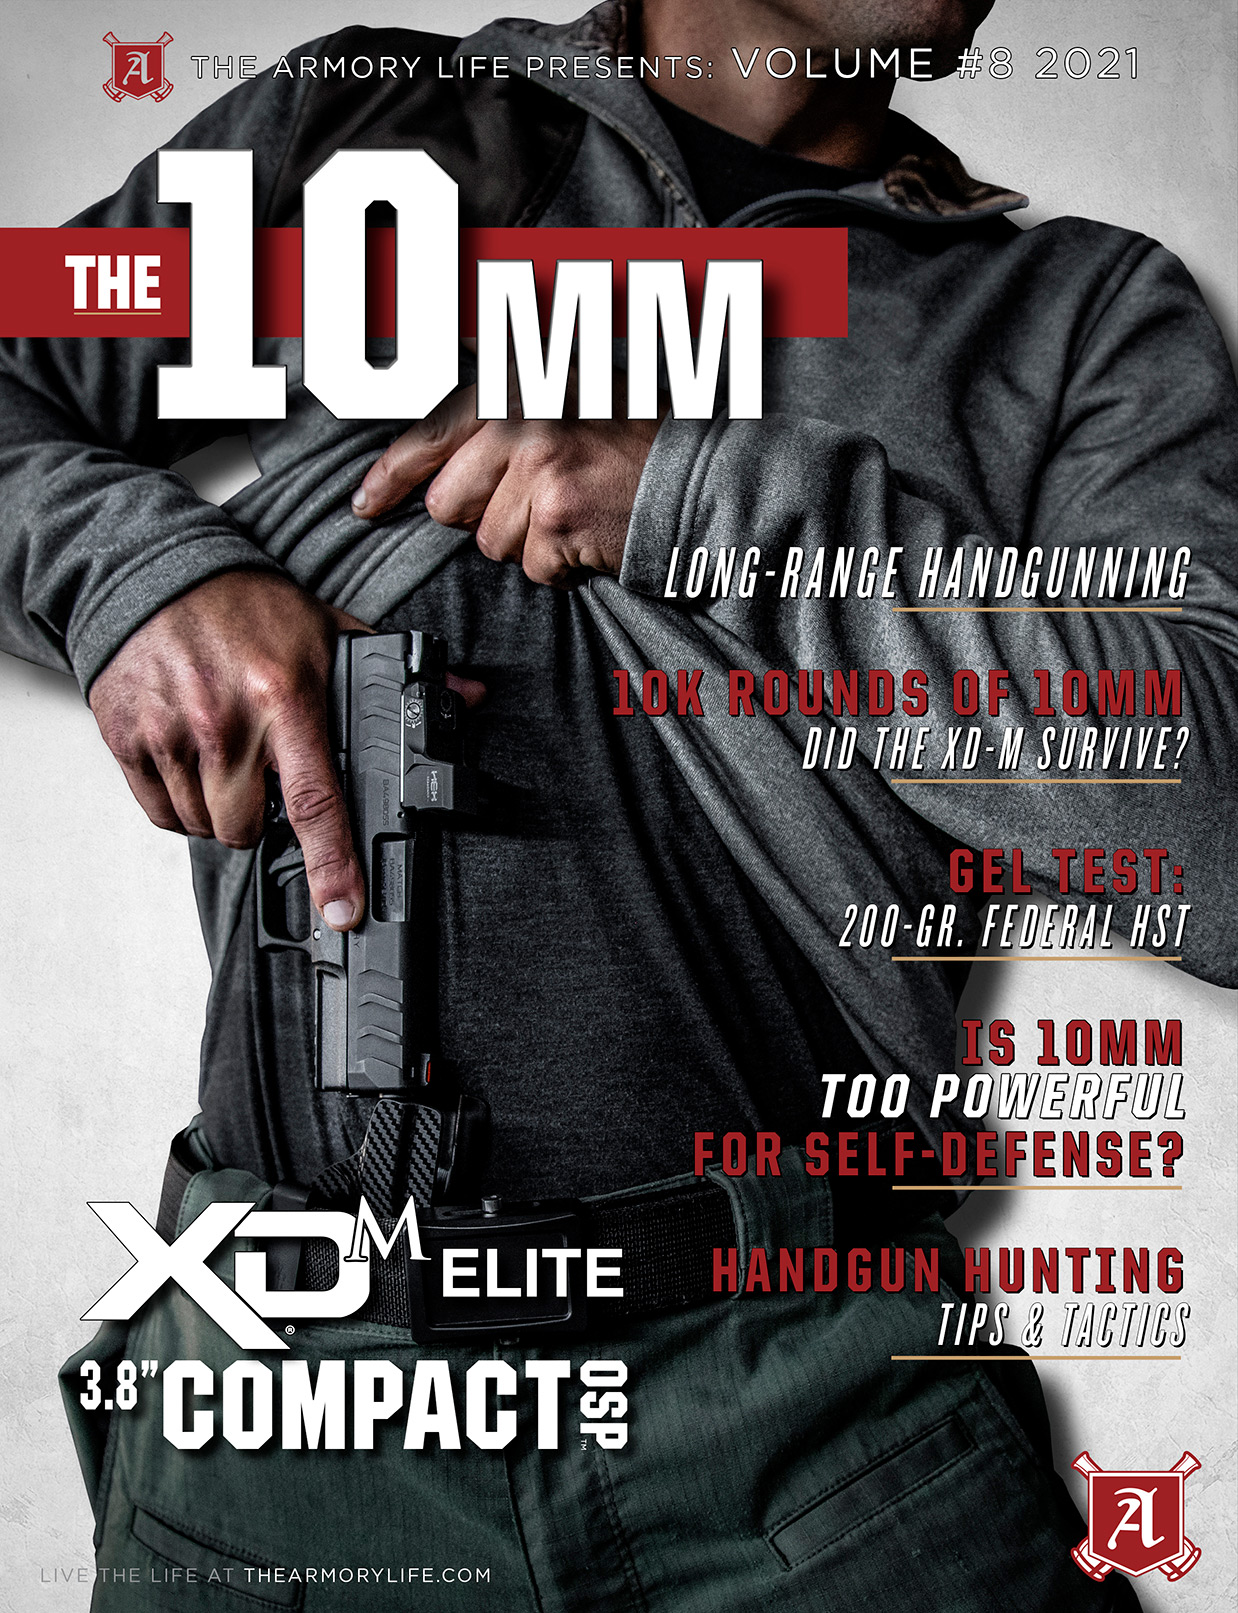 Cover for The Armory Life Digital Magazine Volume 8: The 10mm